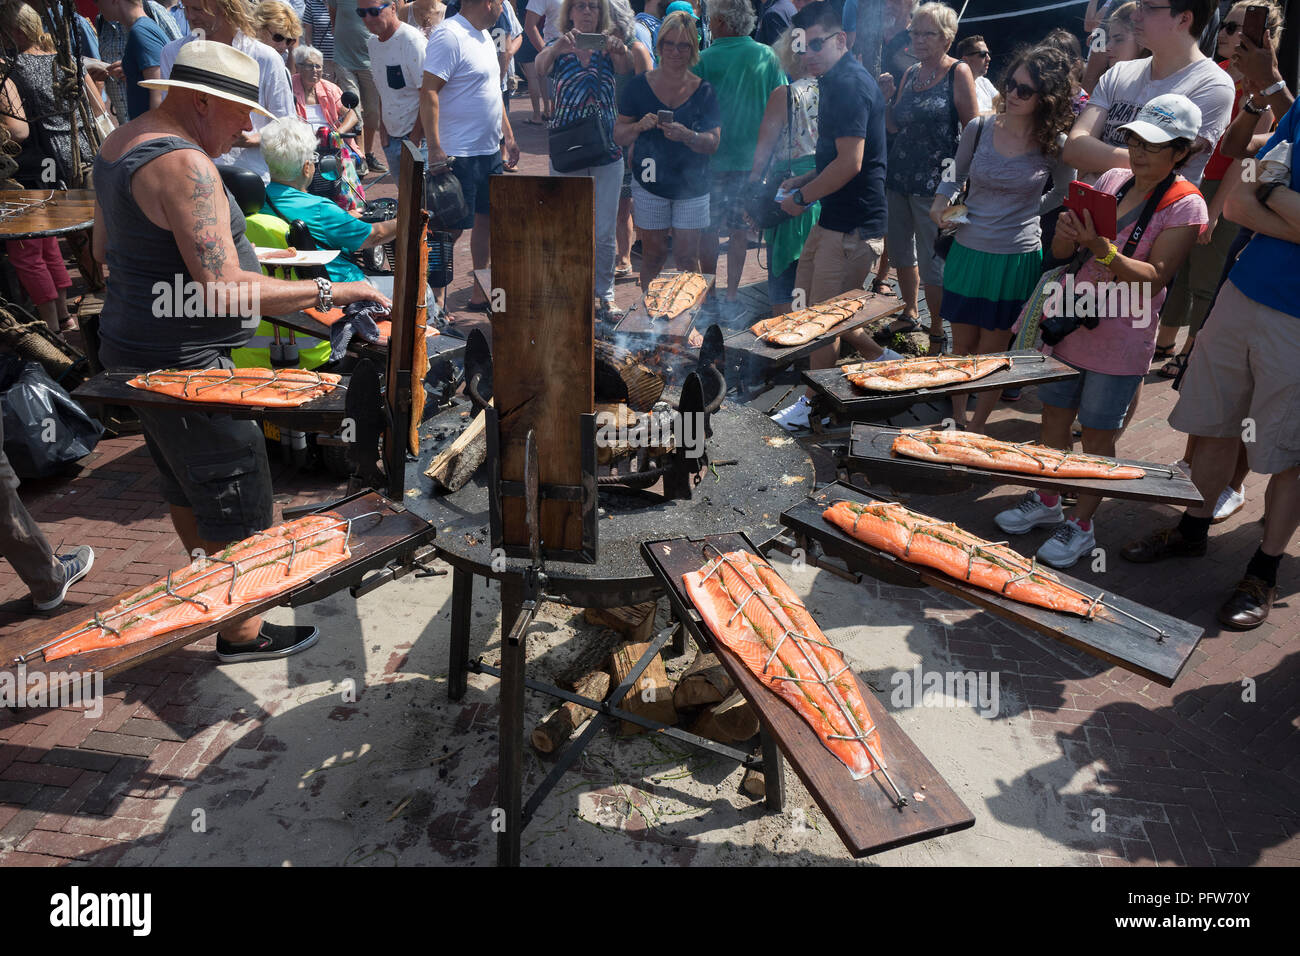 Leiden, Netherlands - July 28, 2018: Smoking fresh salmon during the festival of Sail Leiden 2018 - Stock Image